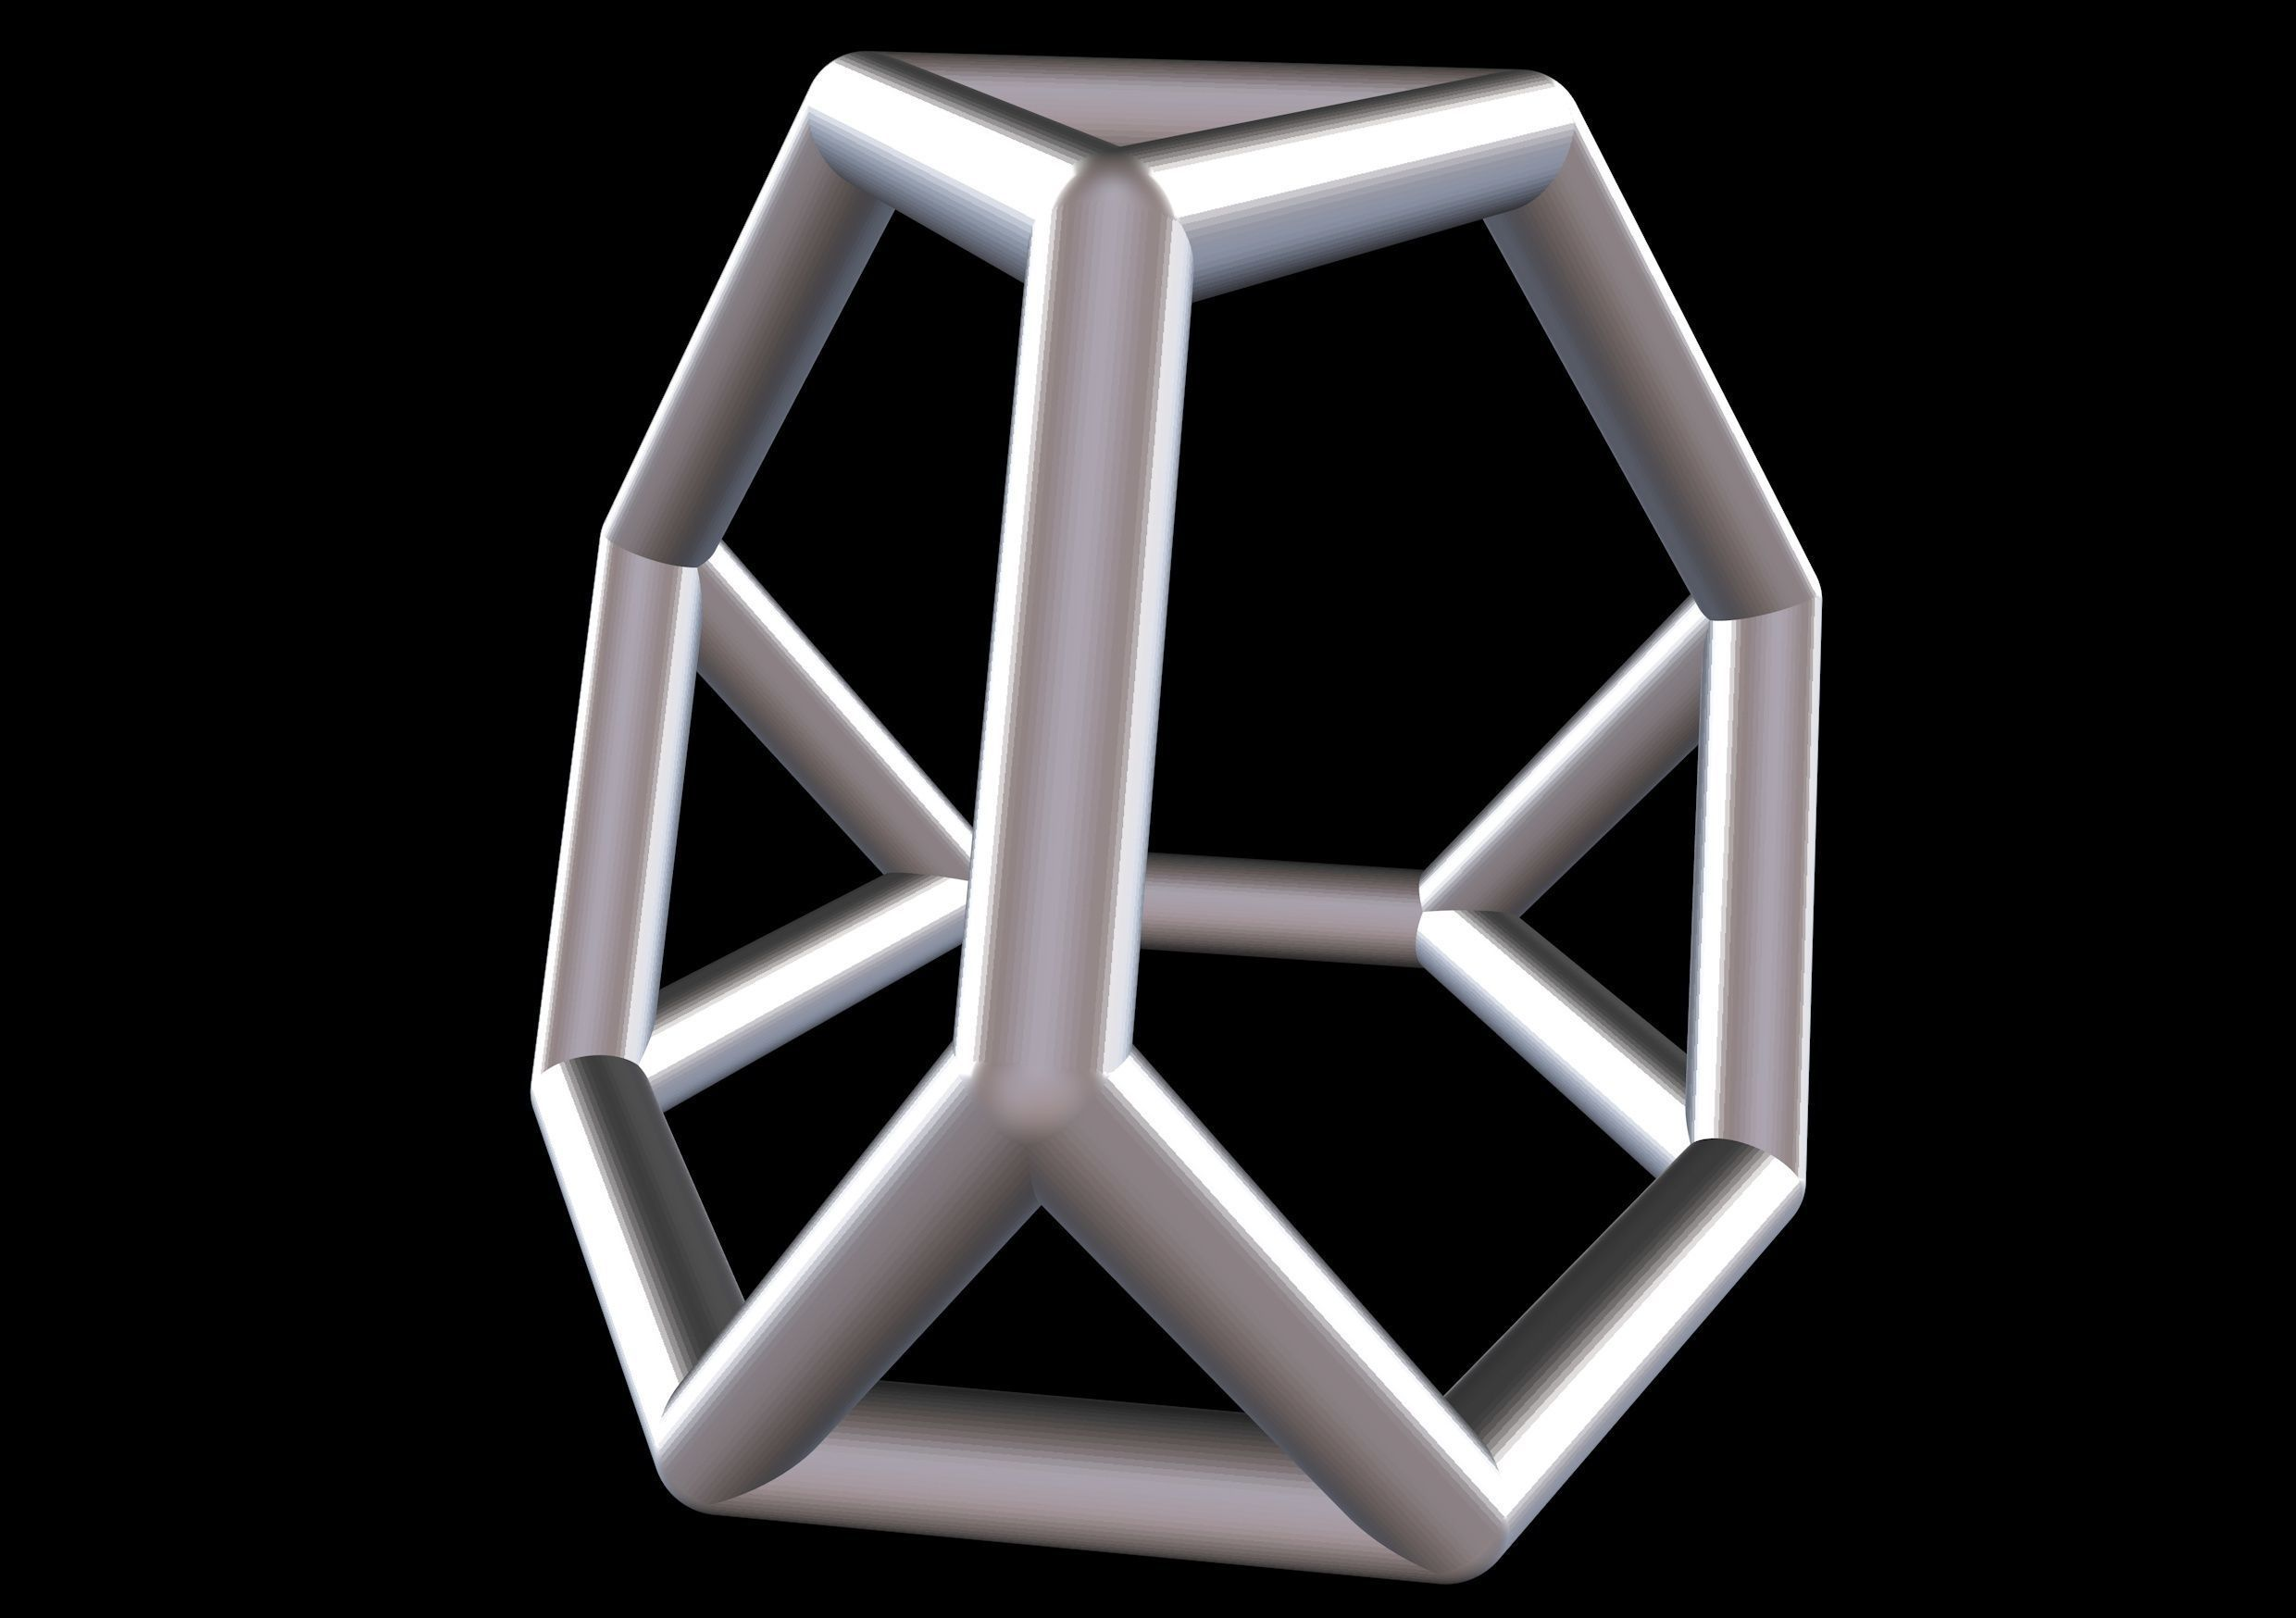 052 Mathart-Archimedean Solids-Truncated Tetrahedron 01-10cm